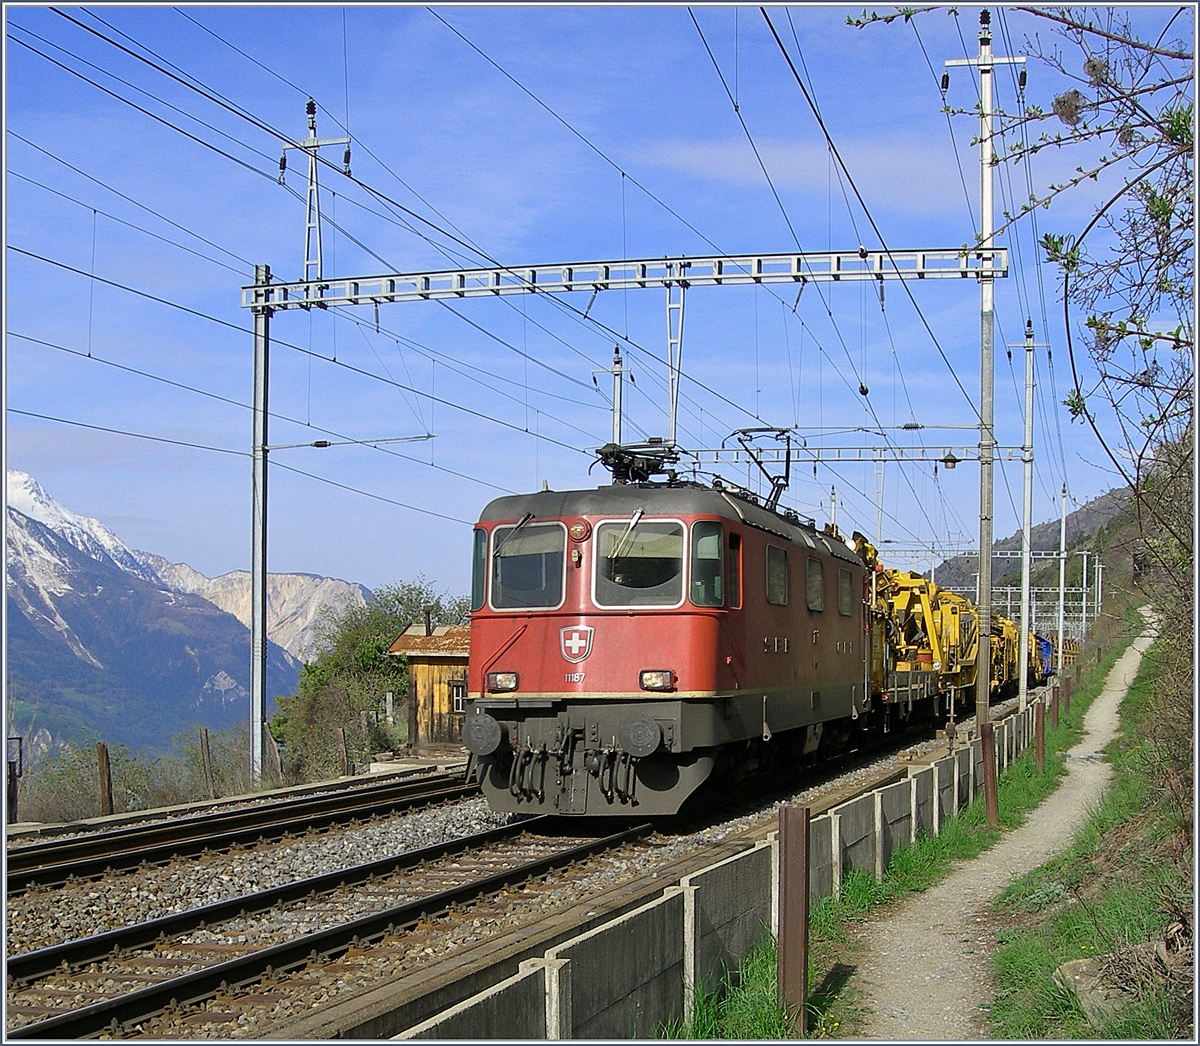 The SBB Re 4/4 II 11187 by Hohtenn.